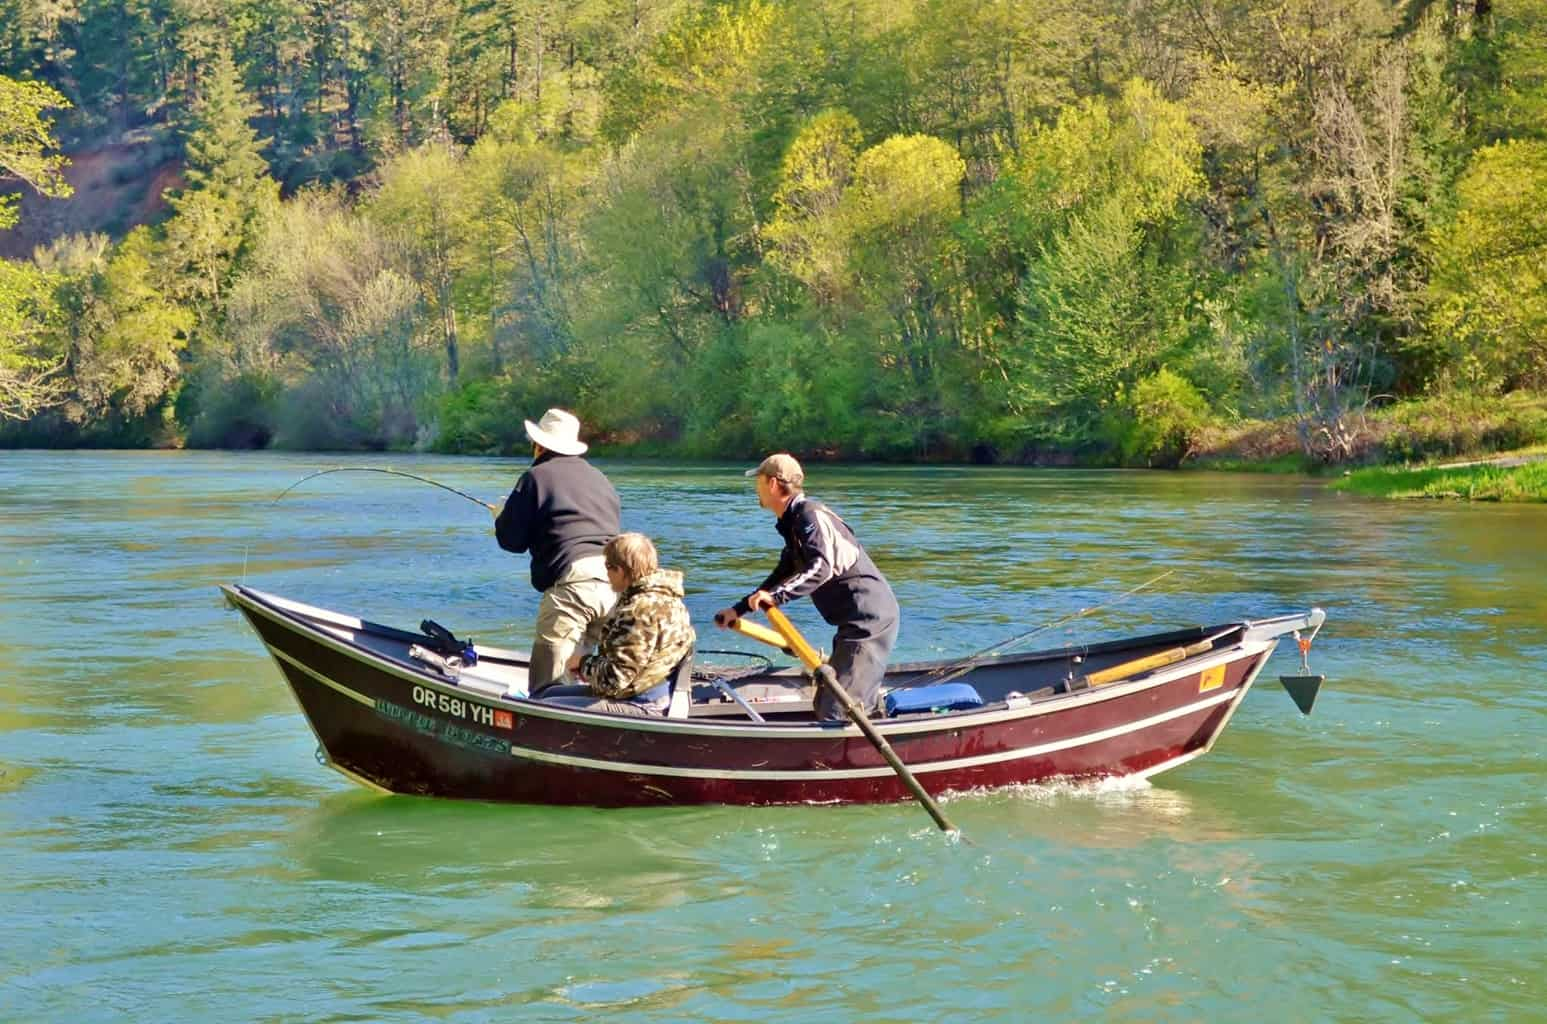 A drift boat with anglers fishing on the rogue river in southern Oregon.